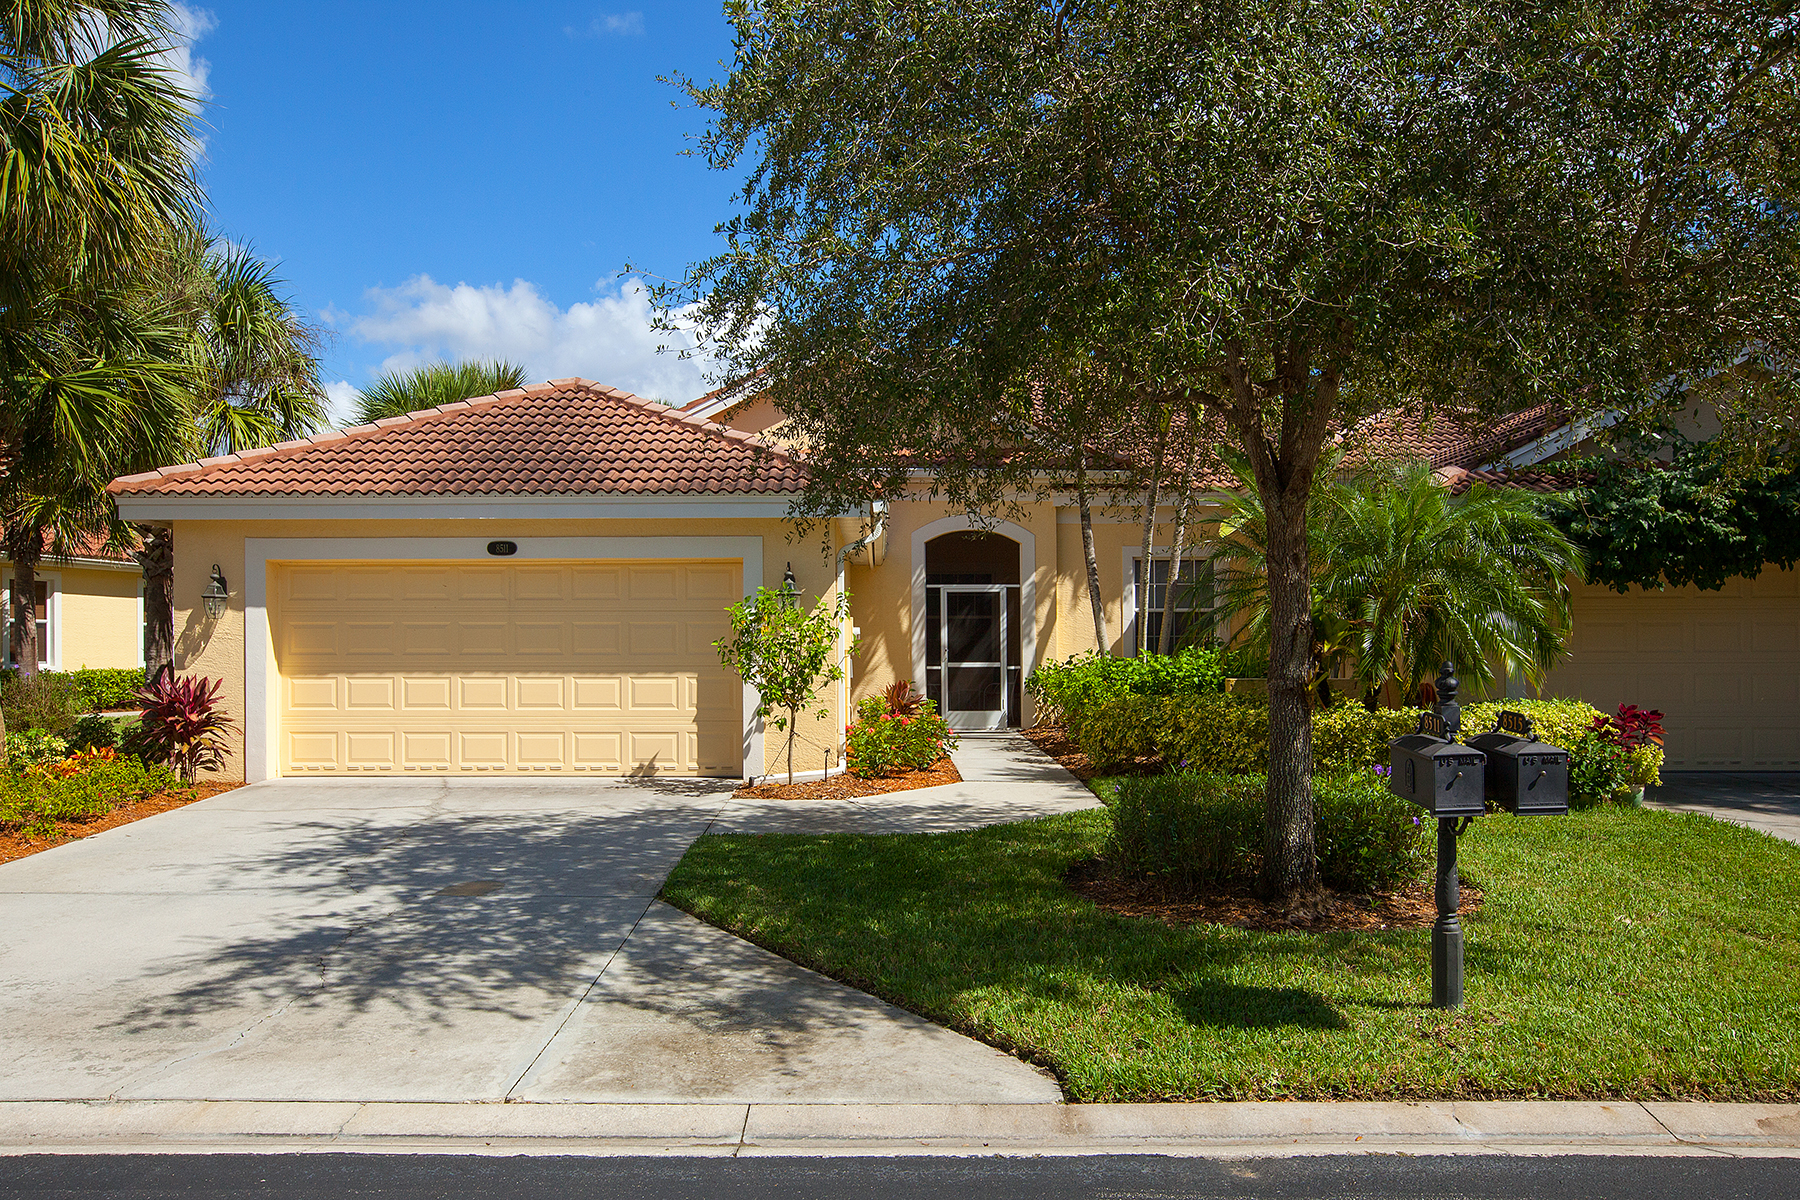 Casa Unifamiliar por un Venta en FIDDLER'S CREEK - BENT CREEK 8511 Bent Creek Way Naples, Florida, 34114 Estados Unidos